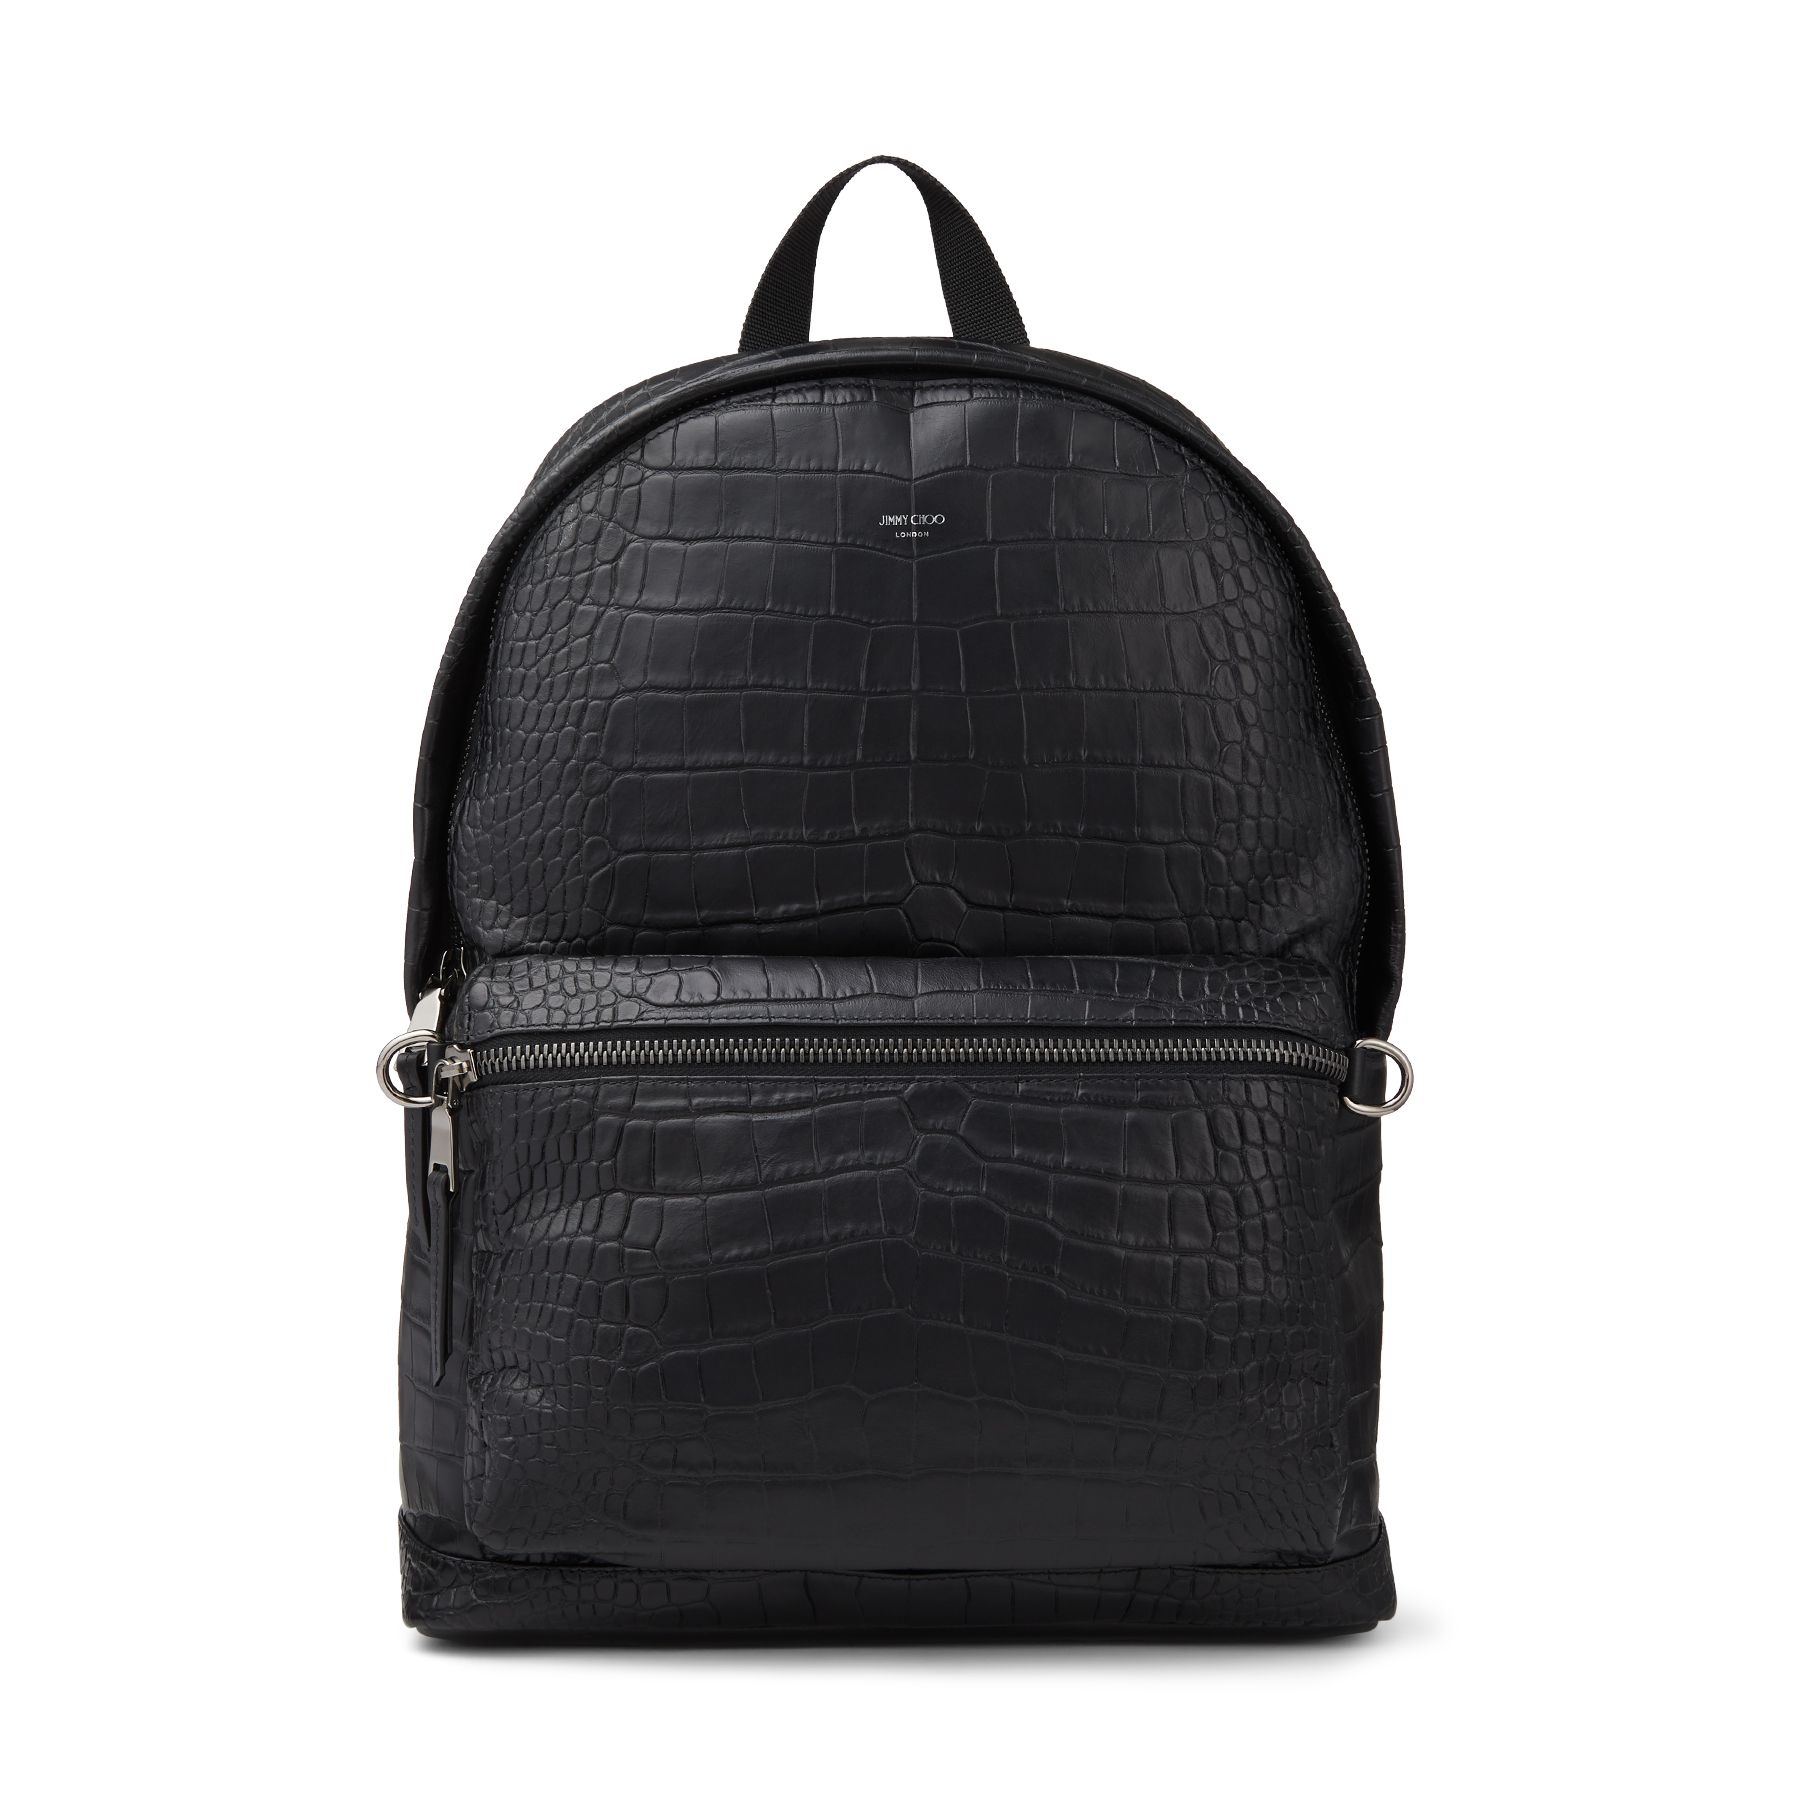 WILMER arrives in black croc-embossed leather. Crafted in Italy, the backpack is designed to hold all your daily essentials. The refined, pared-back silhouette opens to reveal a capacious interior, laptop compartment and zipped pocket. Jimmy Choo luxury is echoed in the identification plaque and signature oversized zip pulls.